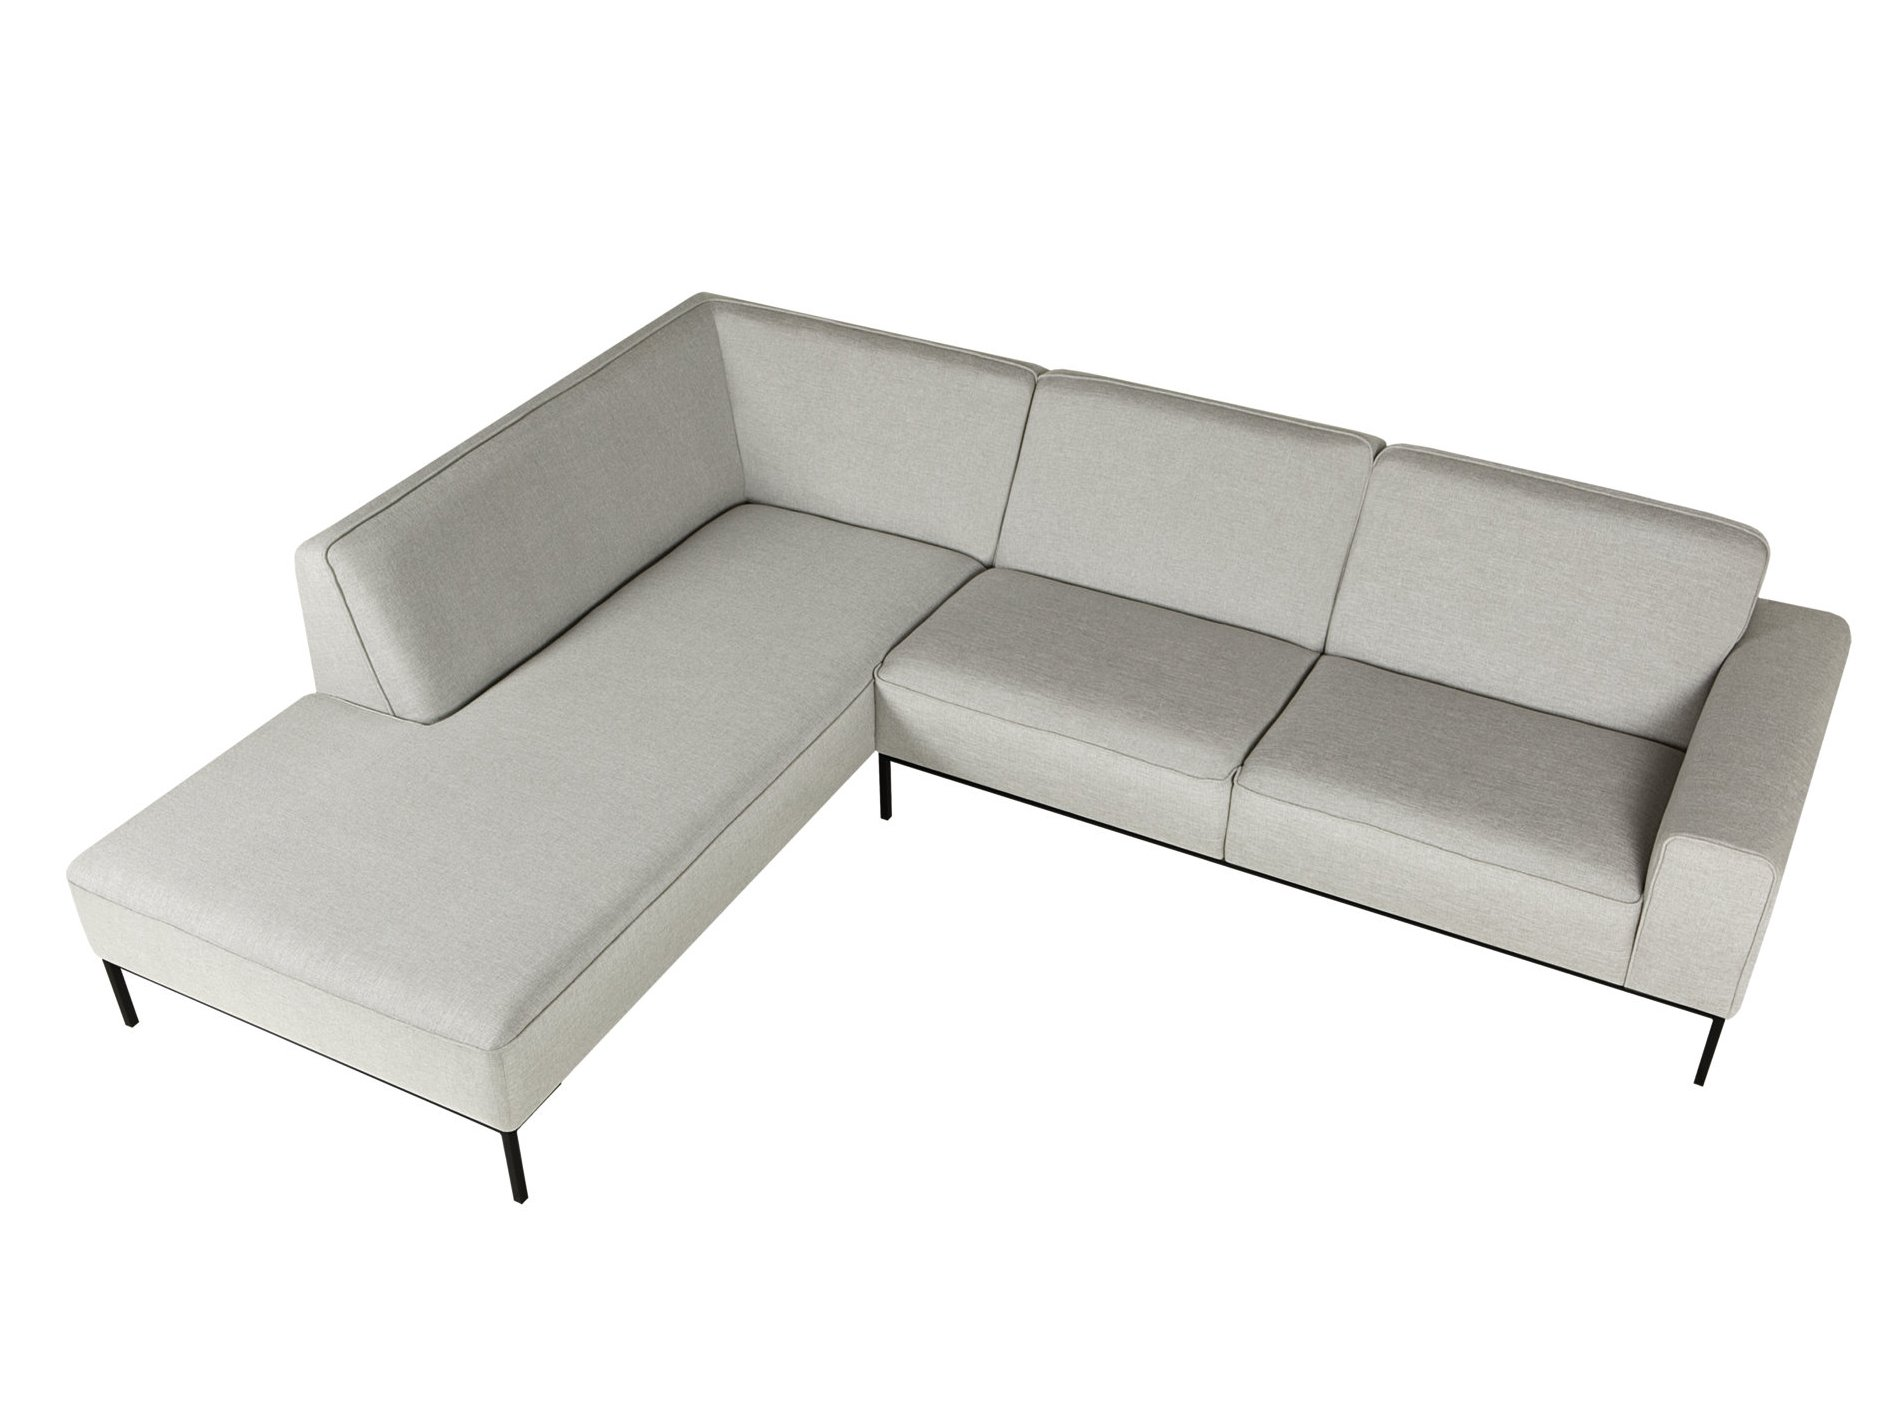 Ville sofa with chaise longue ville collection by sits for Chaise longue design piscine